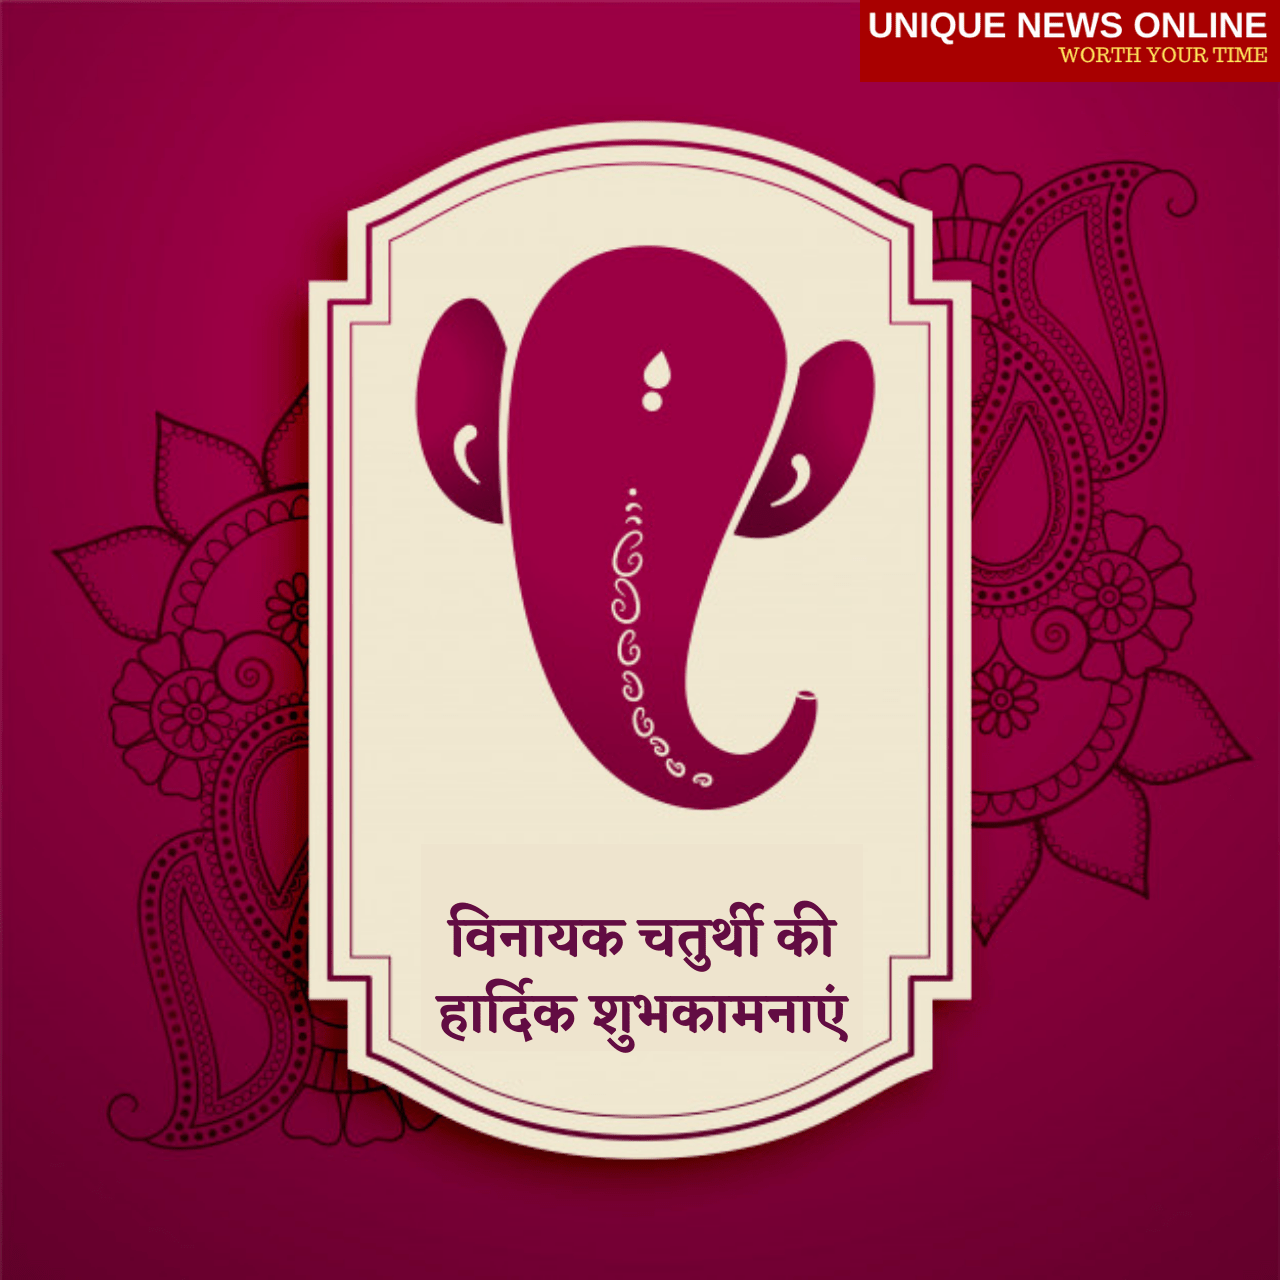 Happy Vinayak Chaturthi 2021 Wishes in Hindi, Messages, Greetings, Quotes, and Images to Share